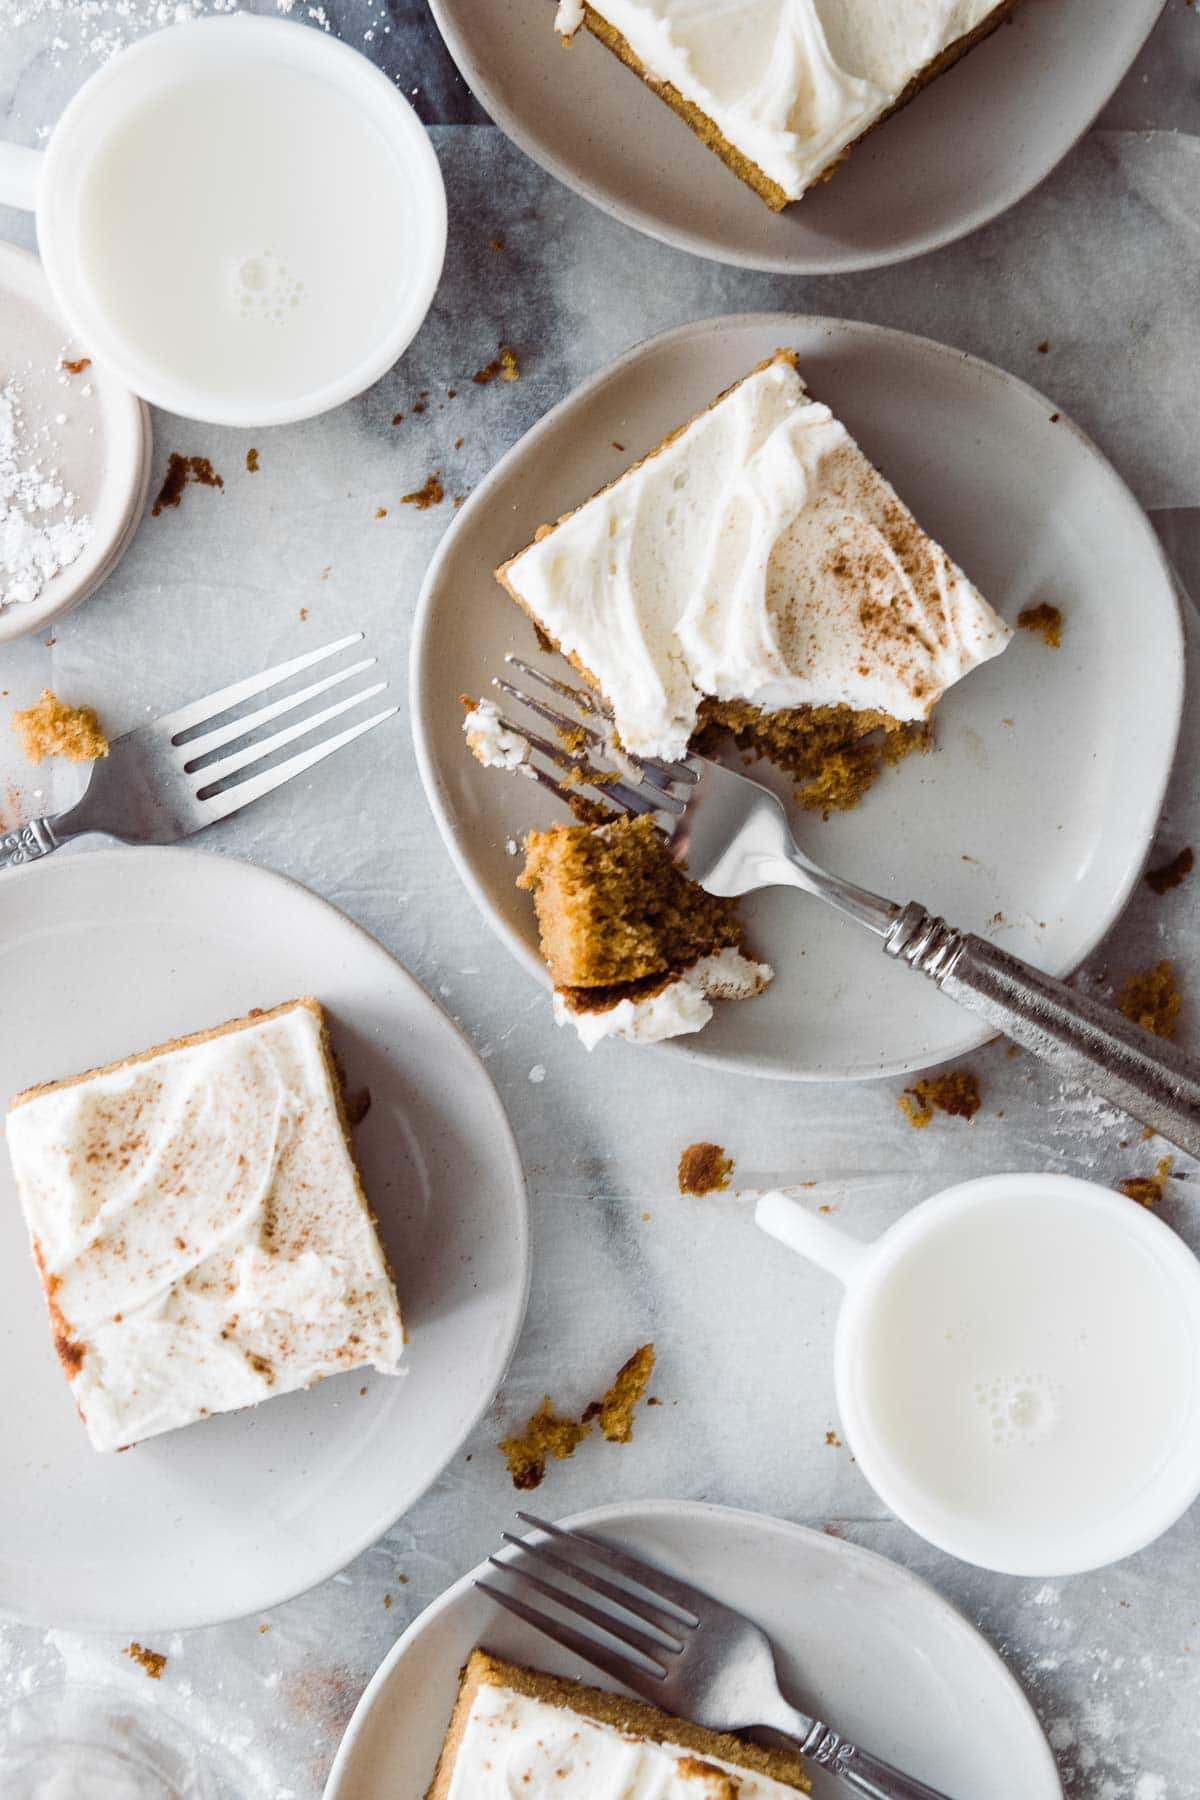 four slices of pumpkin cake on small plates. One slice with a fork taking a bite out.